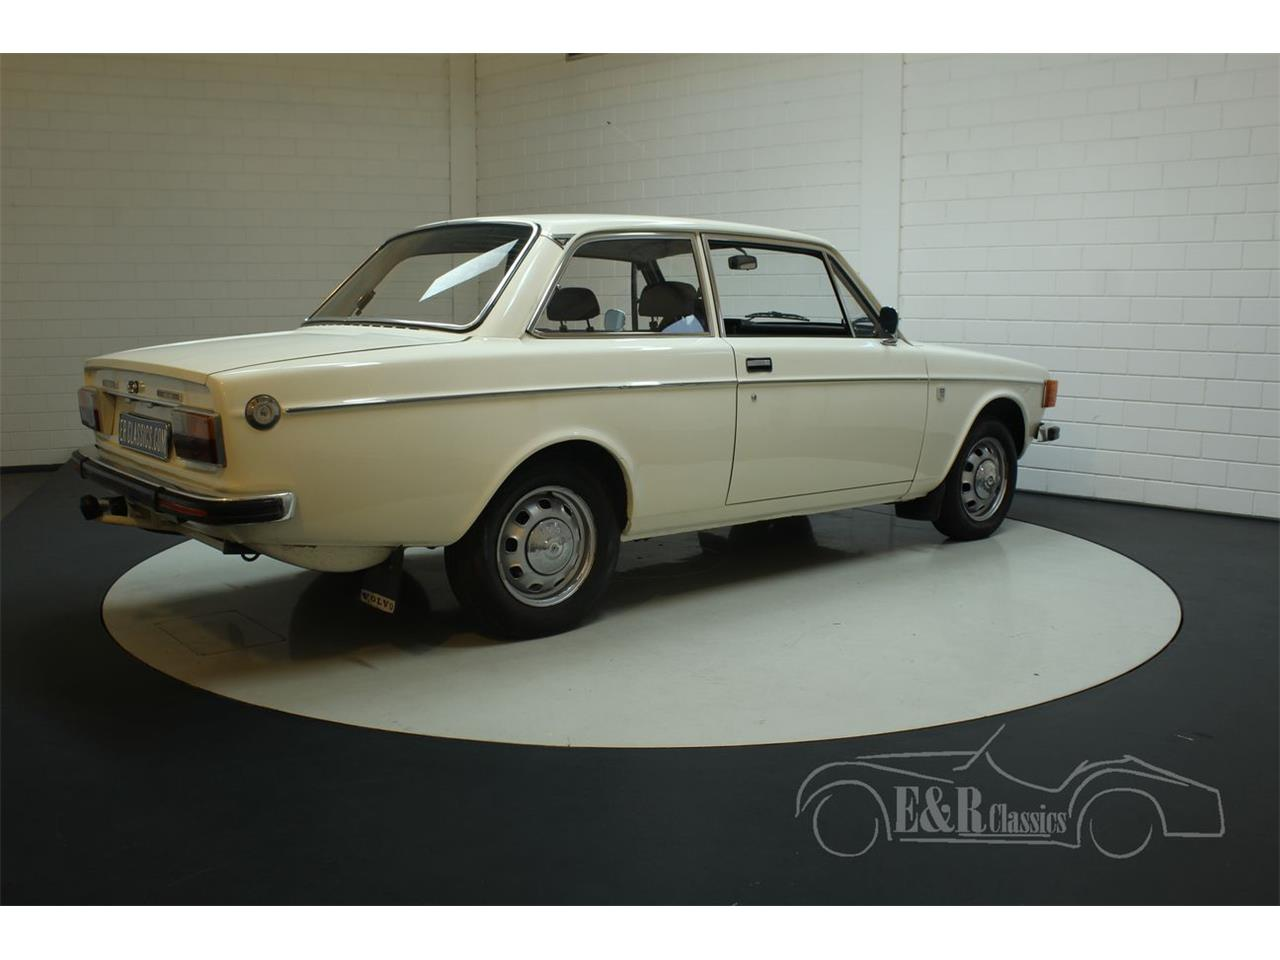 Large Picture of Classic '72 142 - $13,400.00 Offered by E & R Classics - Q3GJ